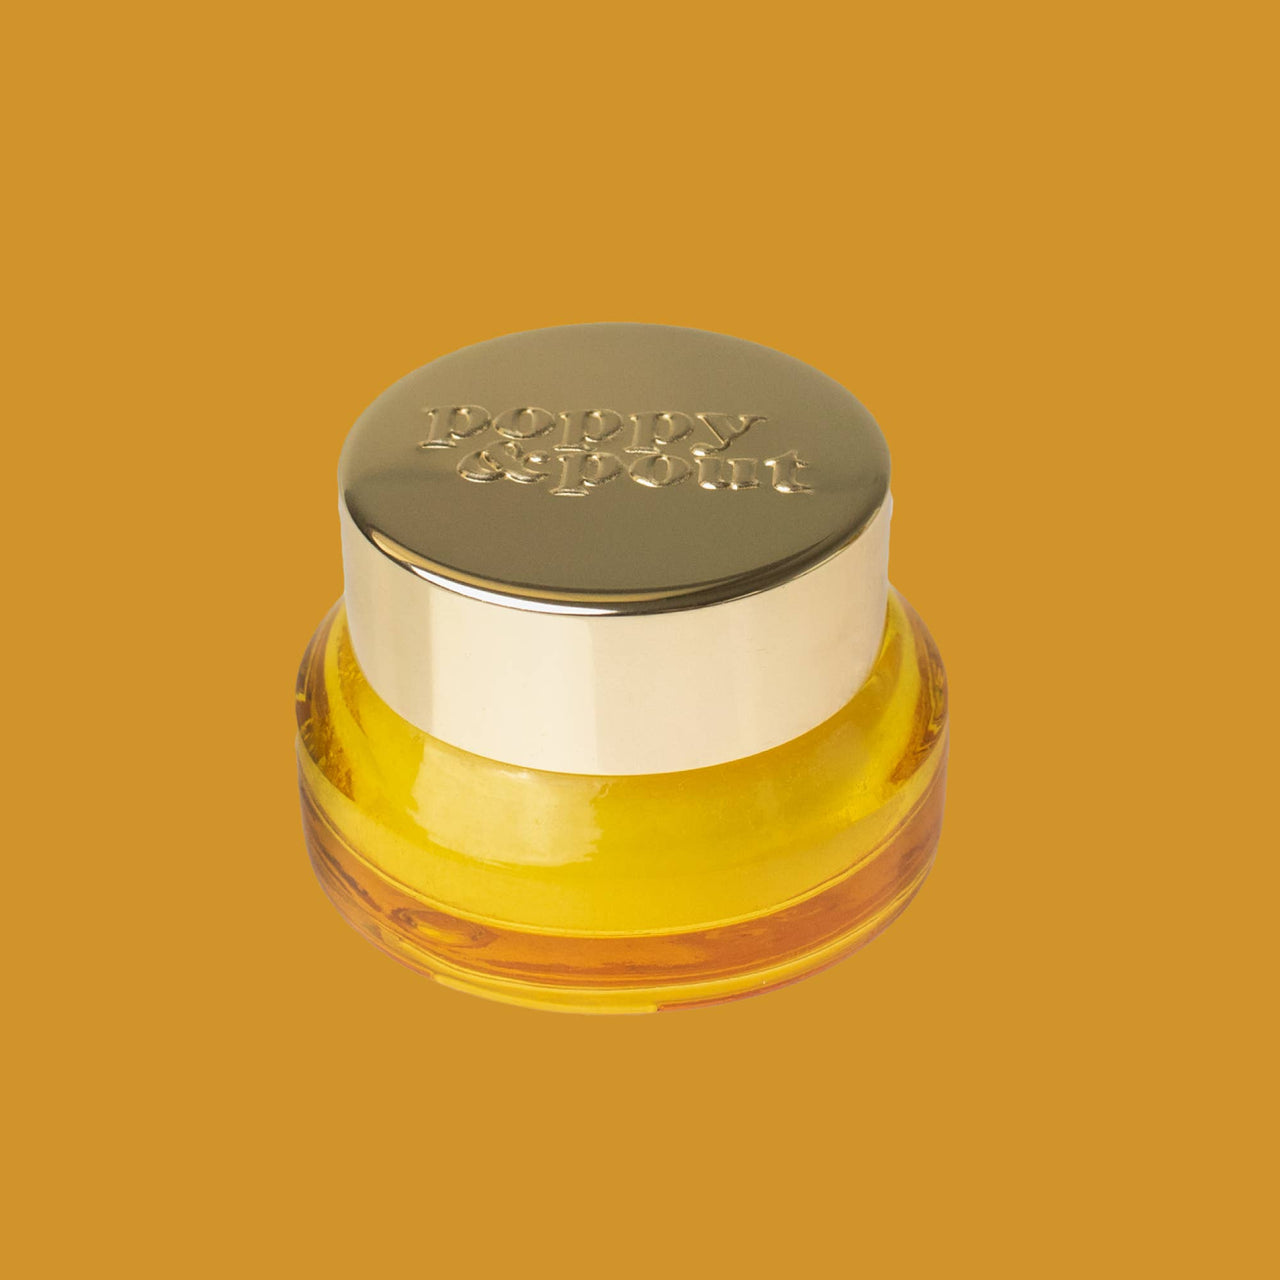 Poppy & Pout - Wild Honey, Flower Powered Lip Care